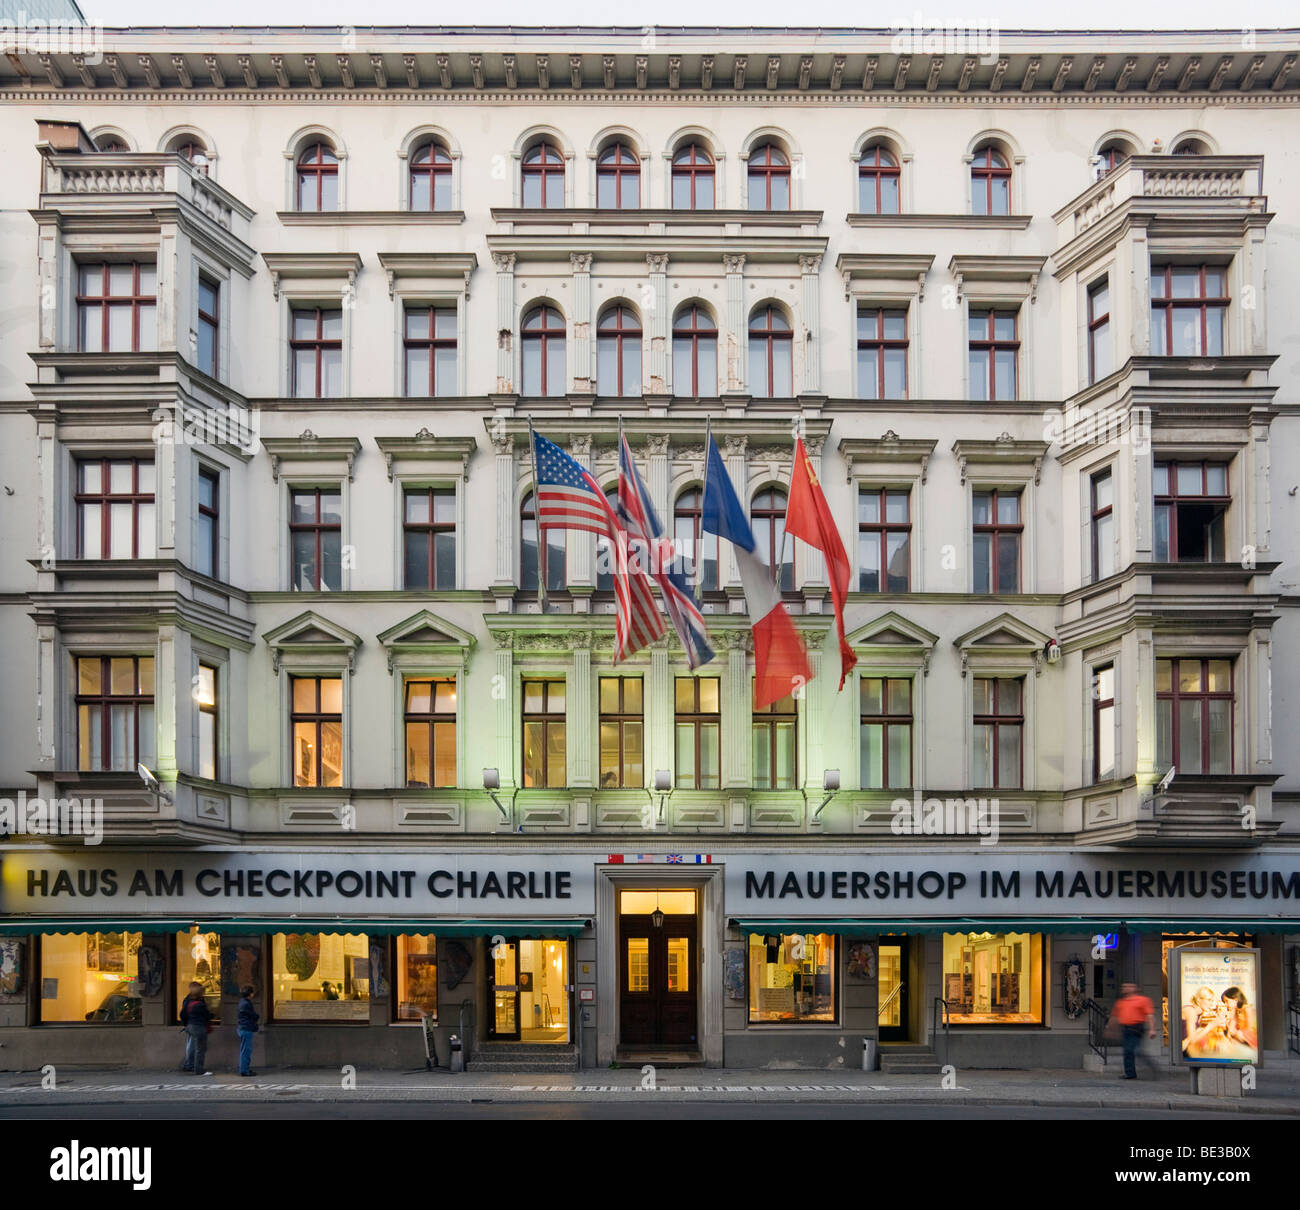 Haus Am Checkpoint Charlie Building Mauermuseum Berlin Wall Museum Stock Photo Alamy